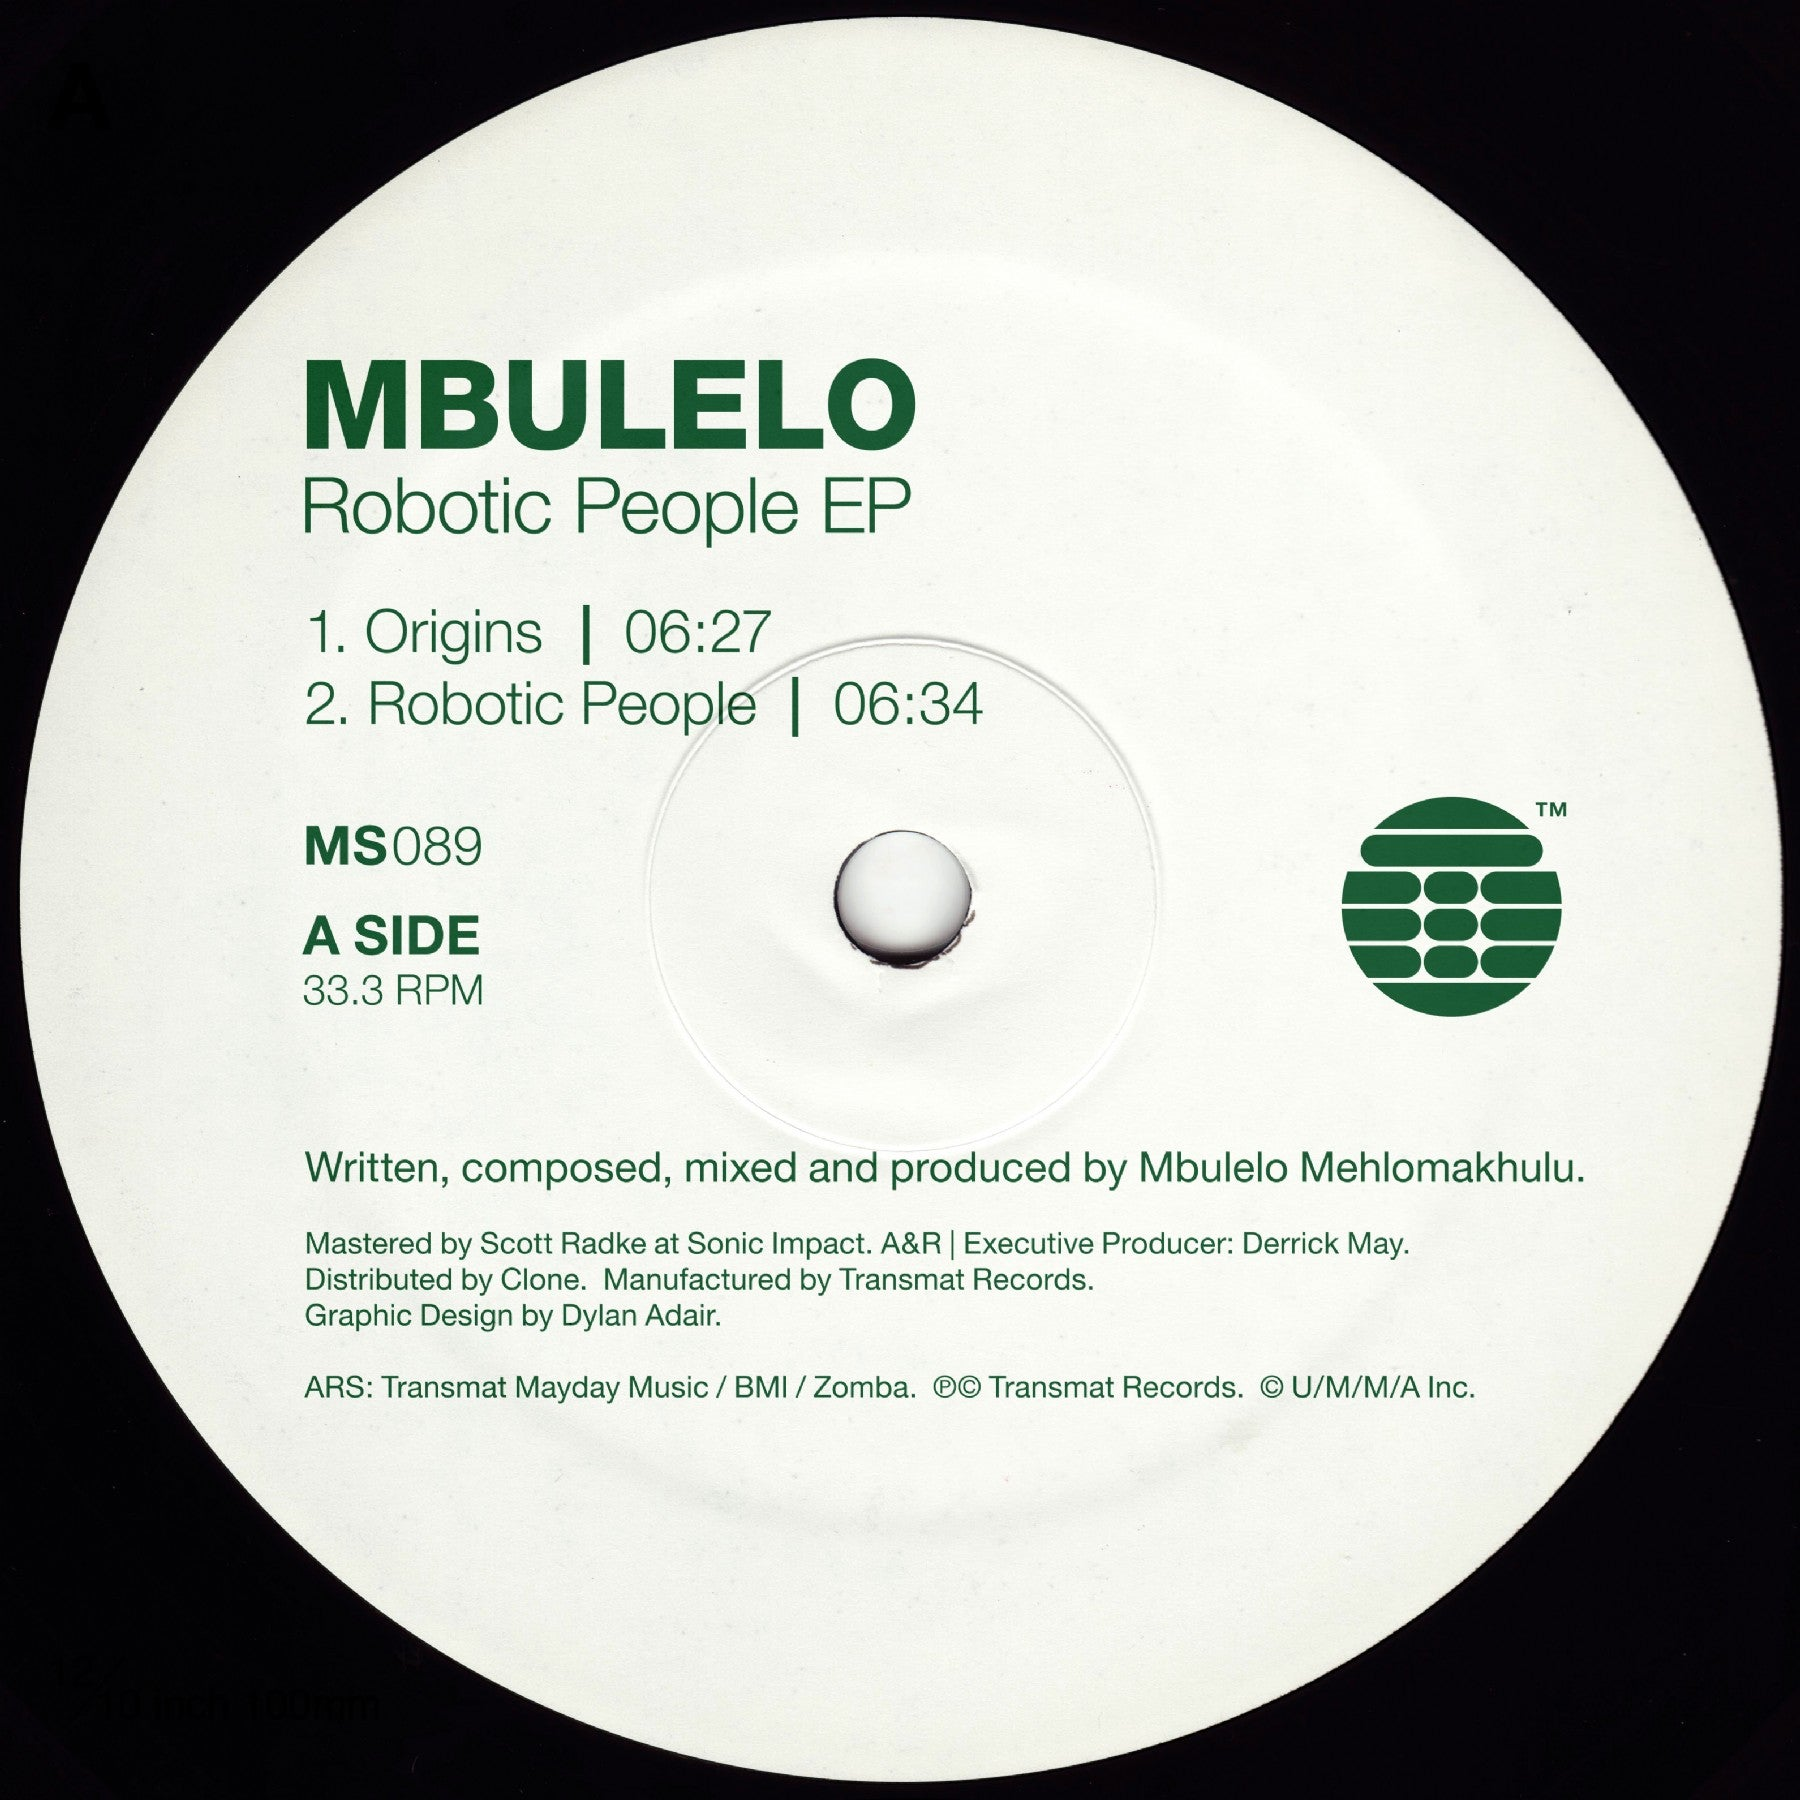 Mbulelo - Robotic People EP